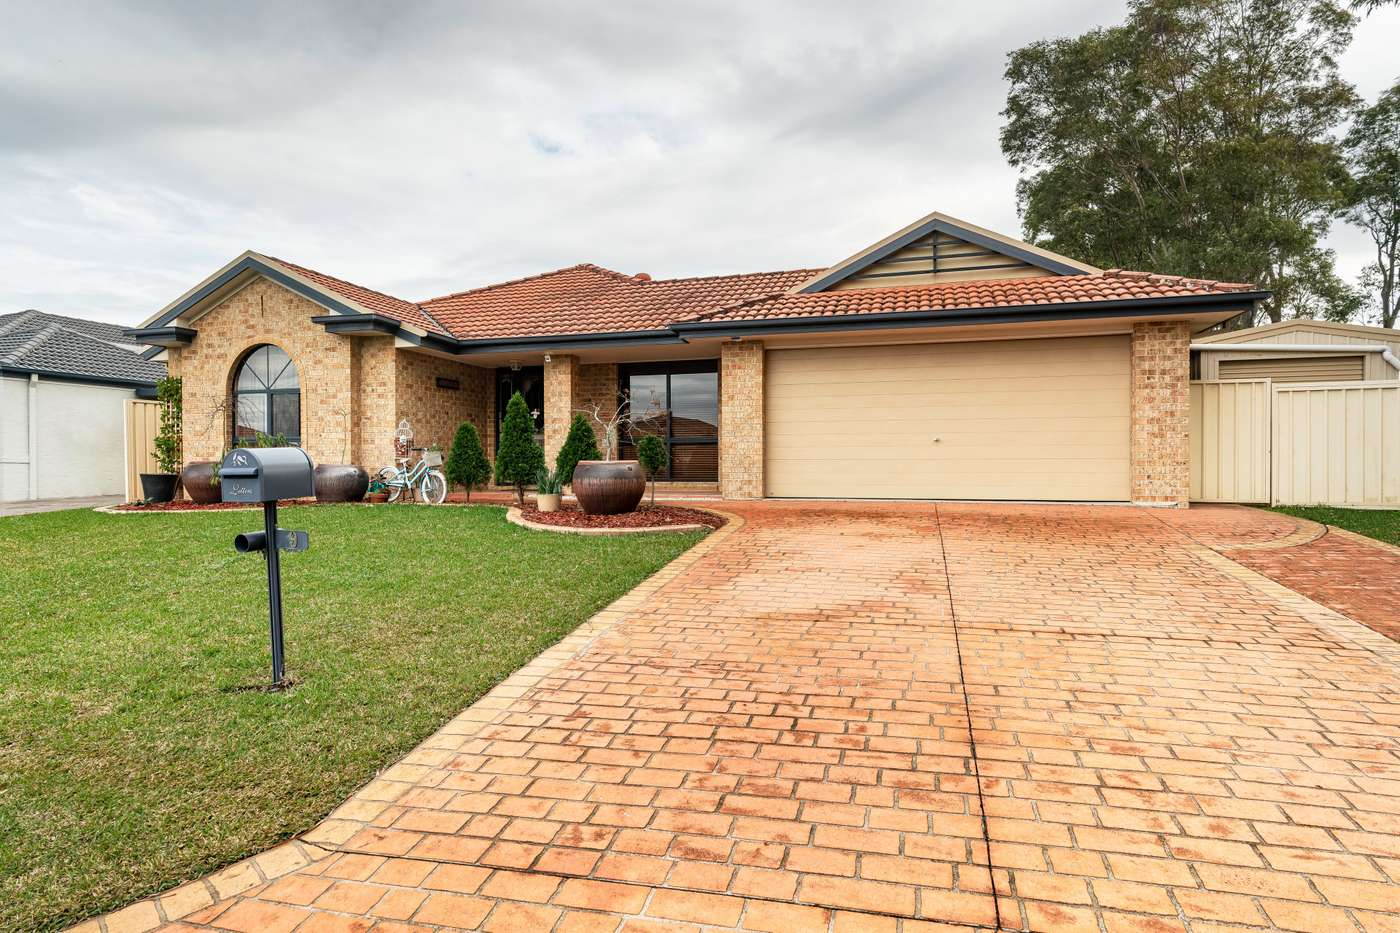 Main view of Homely house listing, 9 Bluewattle Road, Worrigee, NSW 2540